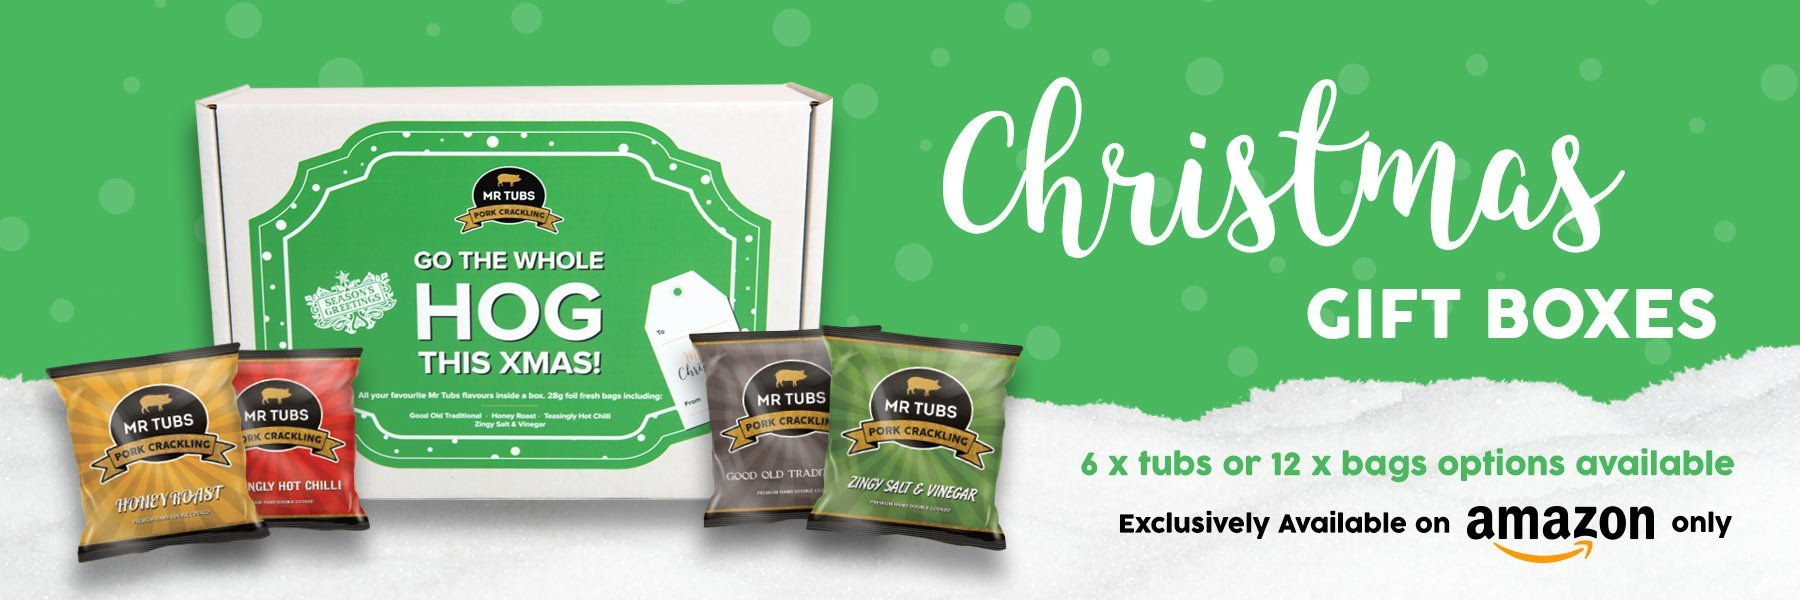 Mr-Tubs-Christmas-Gift-Boxes-BAGS--AMAZON